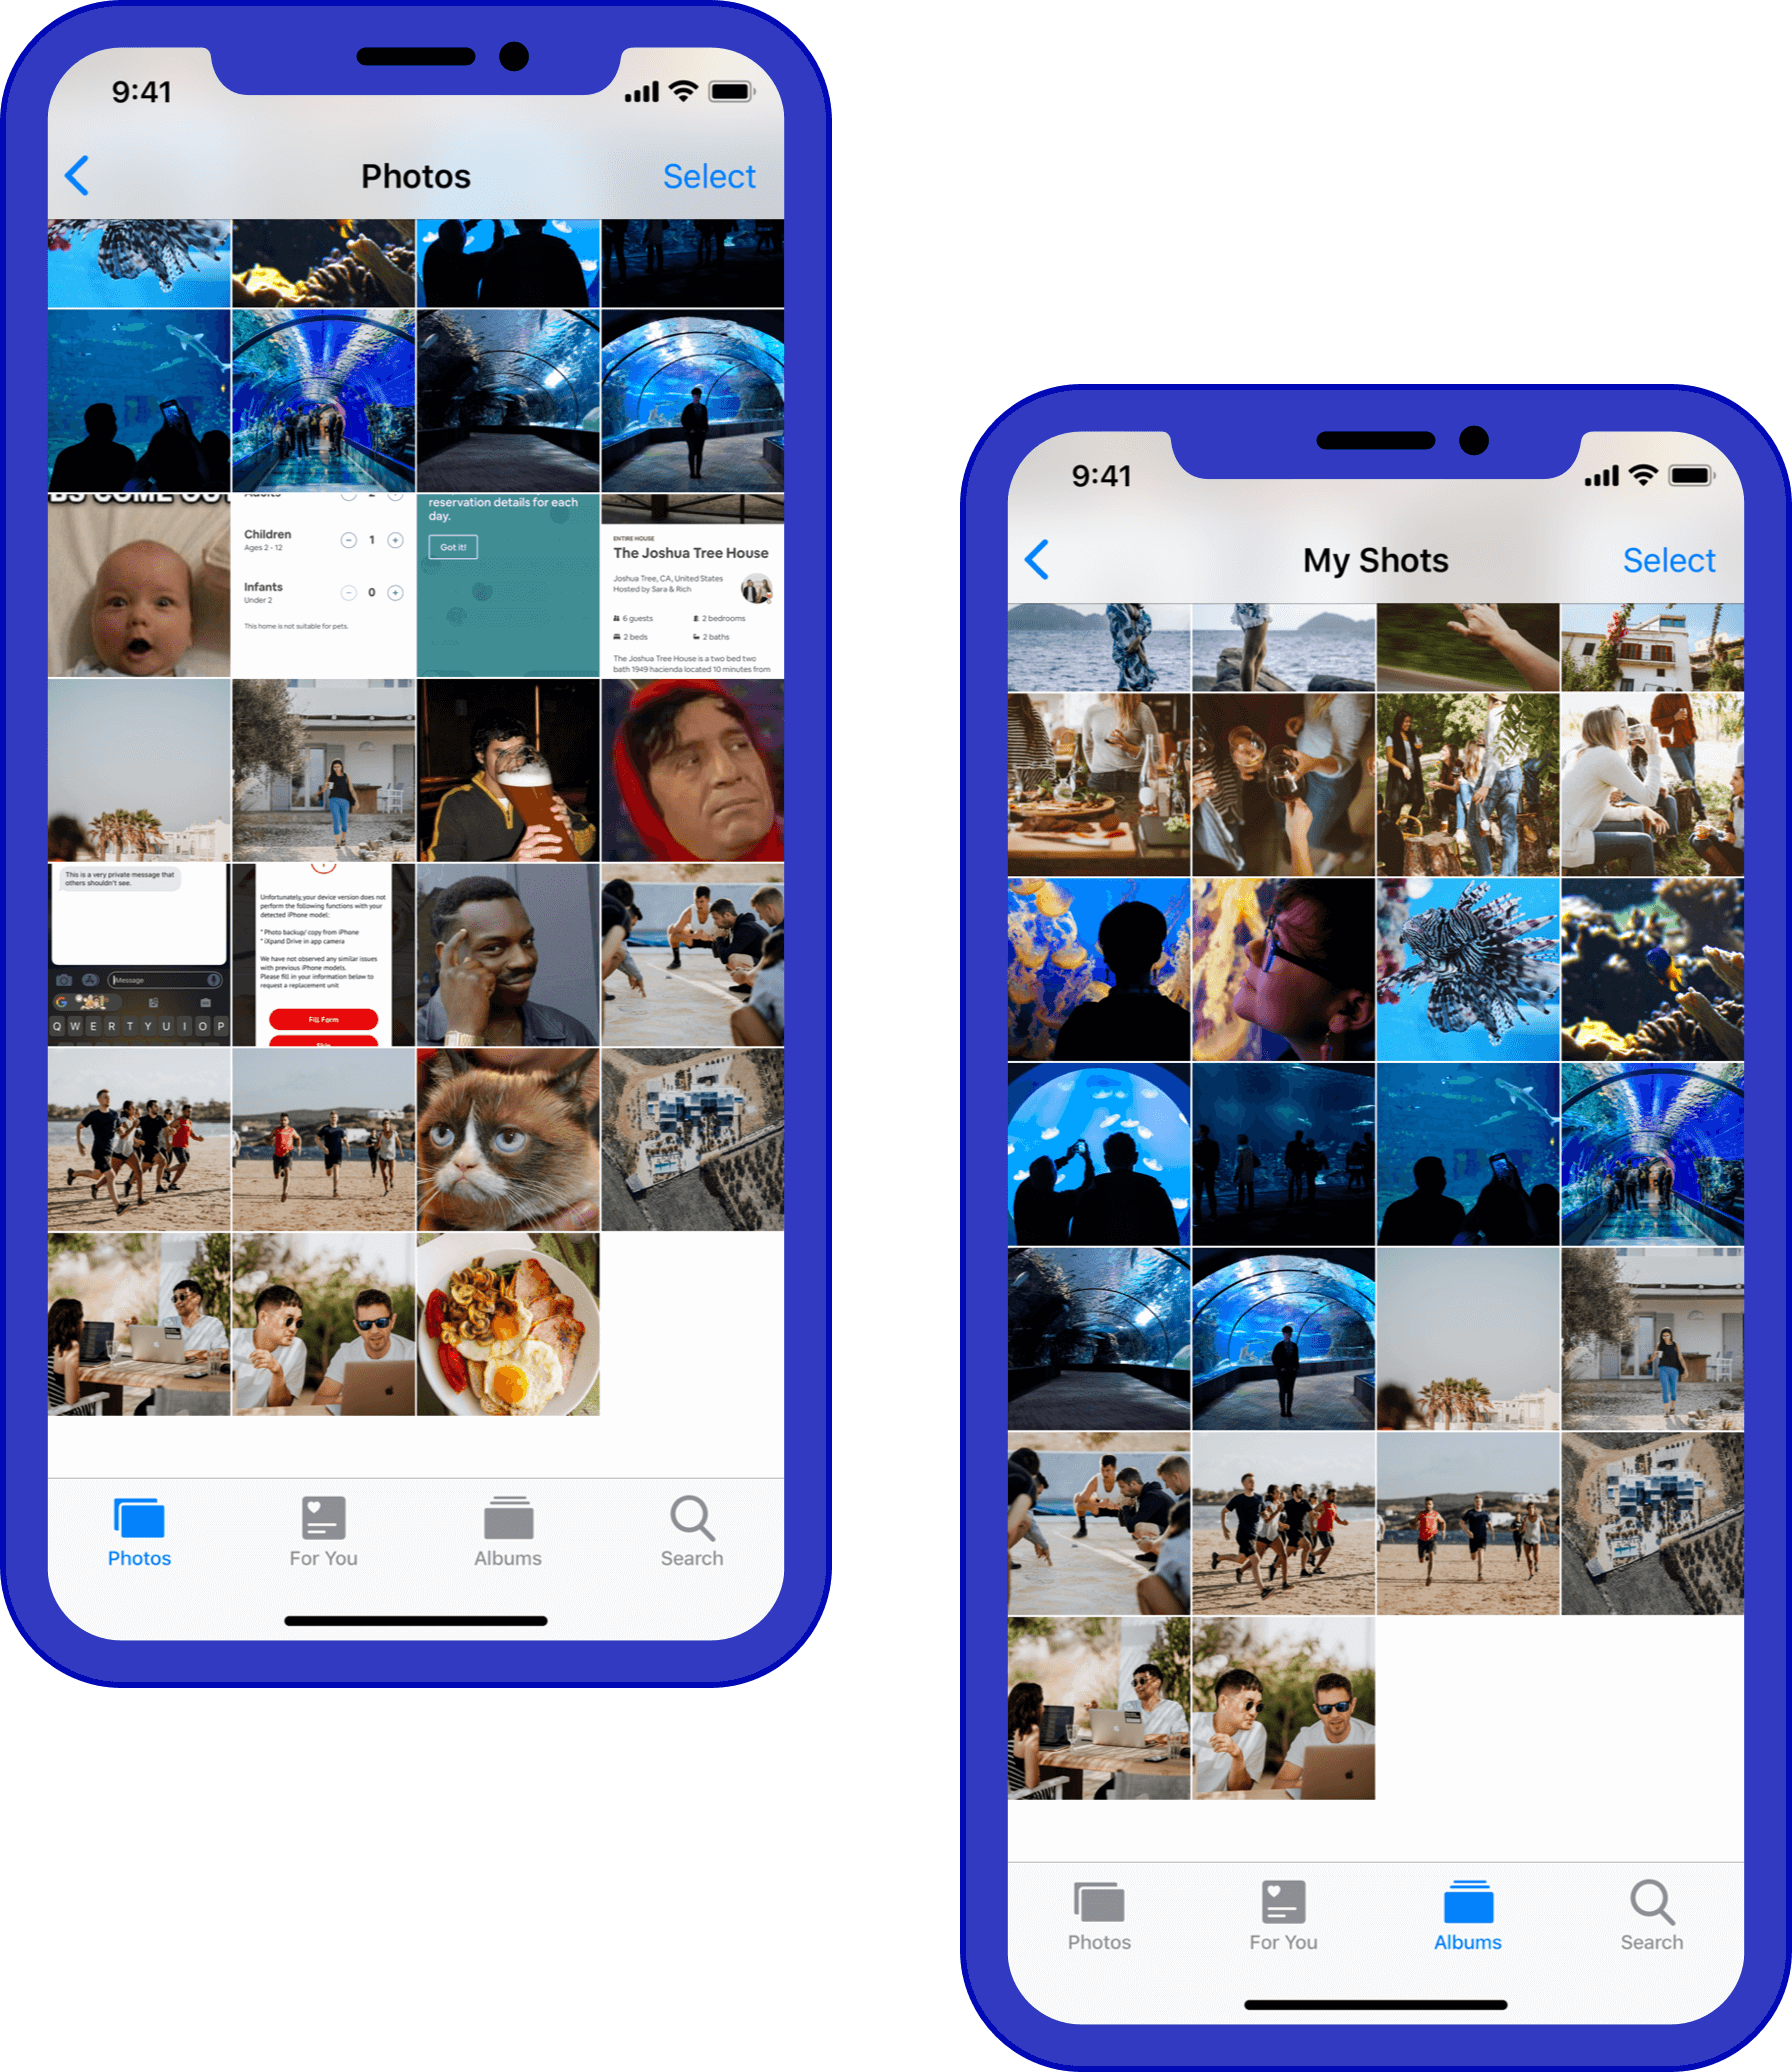 Simulation of two iPhones: one with the camera roll messy and the other with the album showing only the photos taken on that phone.